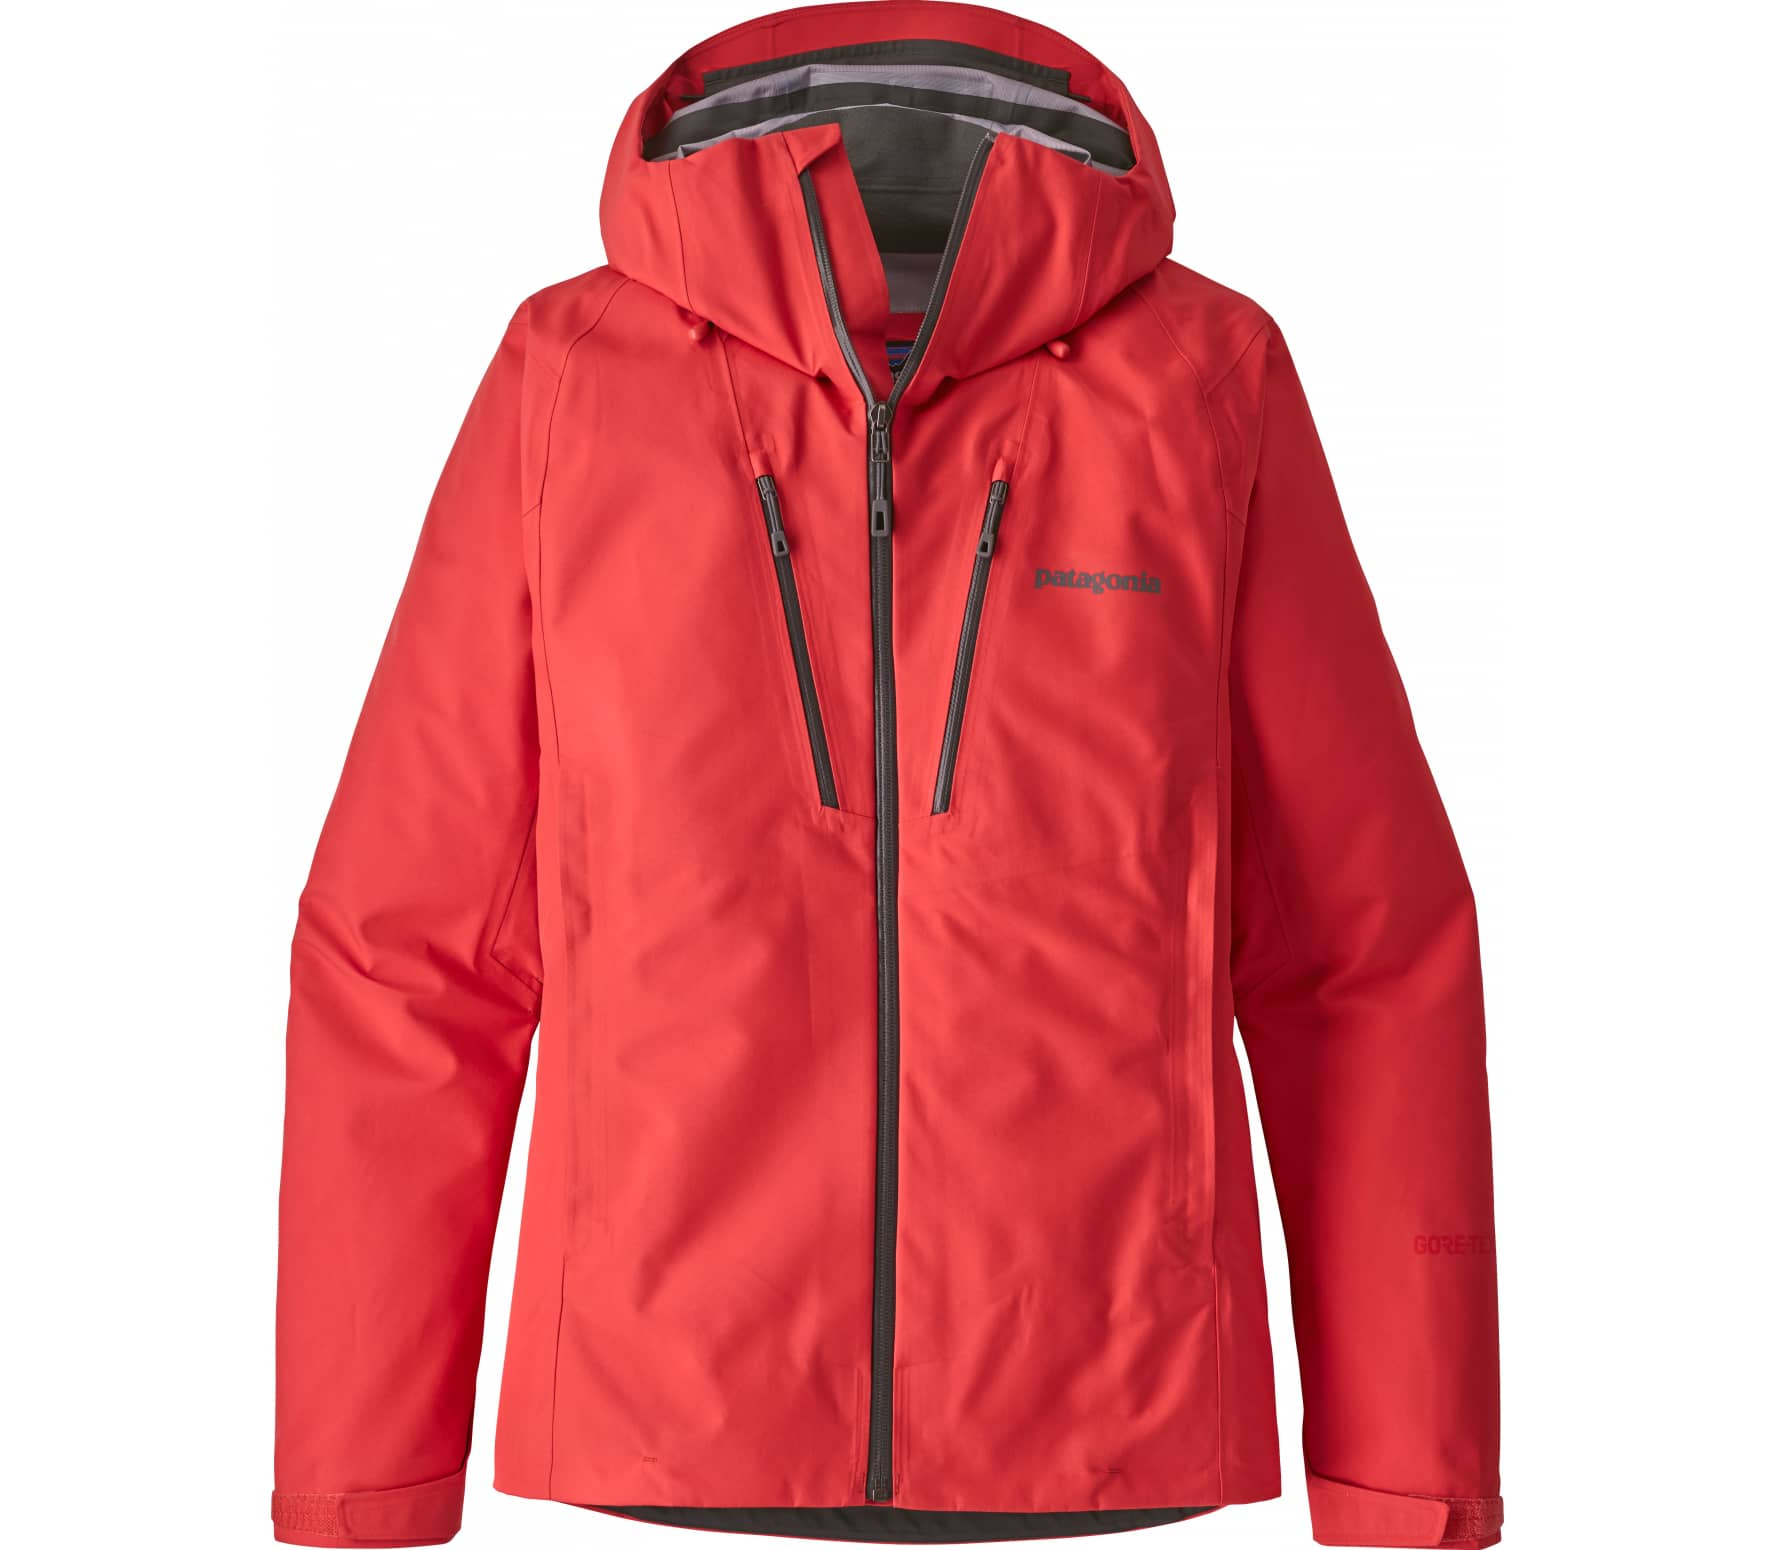 Patagonia - Triolet women's outdoor jacket (red)